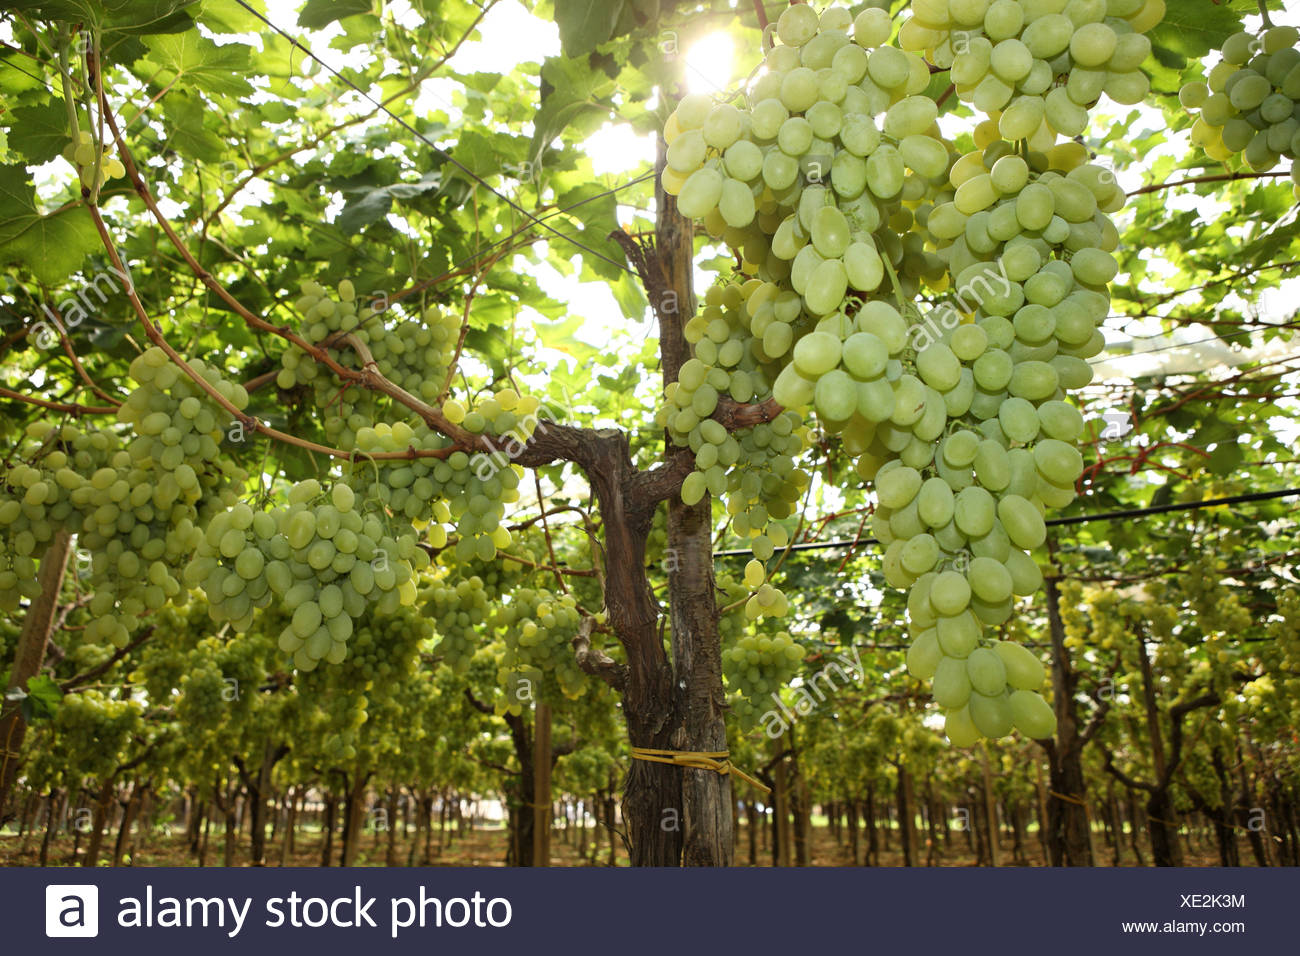 Italy Europe Province of Bari Apulia region Southern Italy Food Grapes Vineyard Vine Wine Harvest Farming - Stock Image